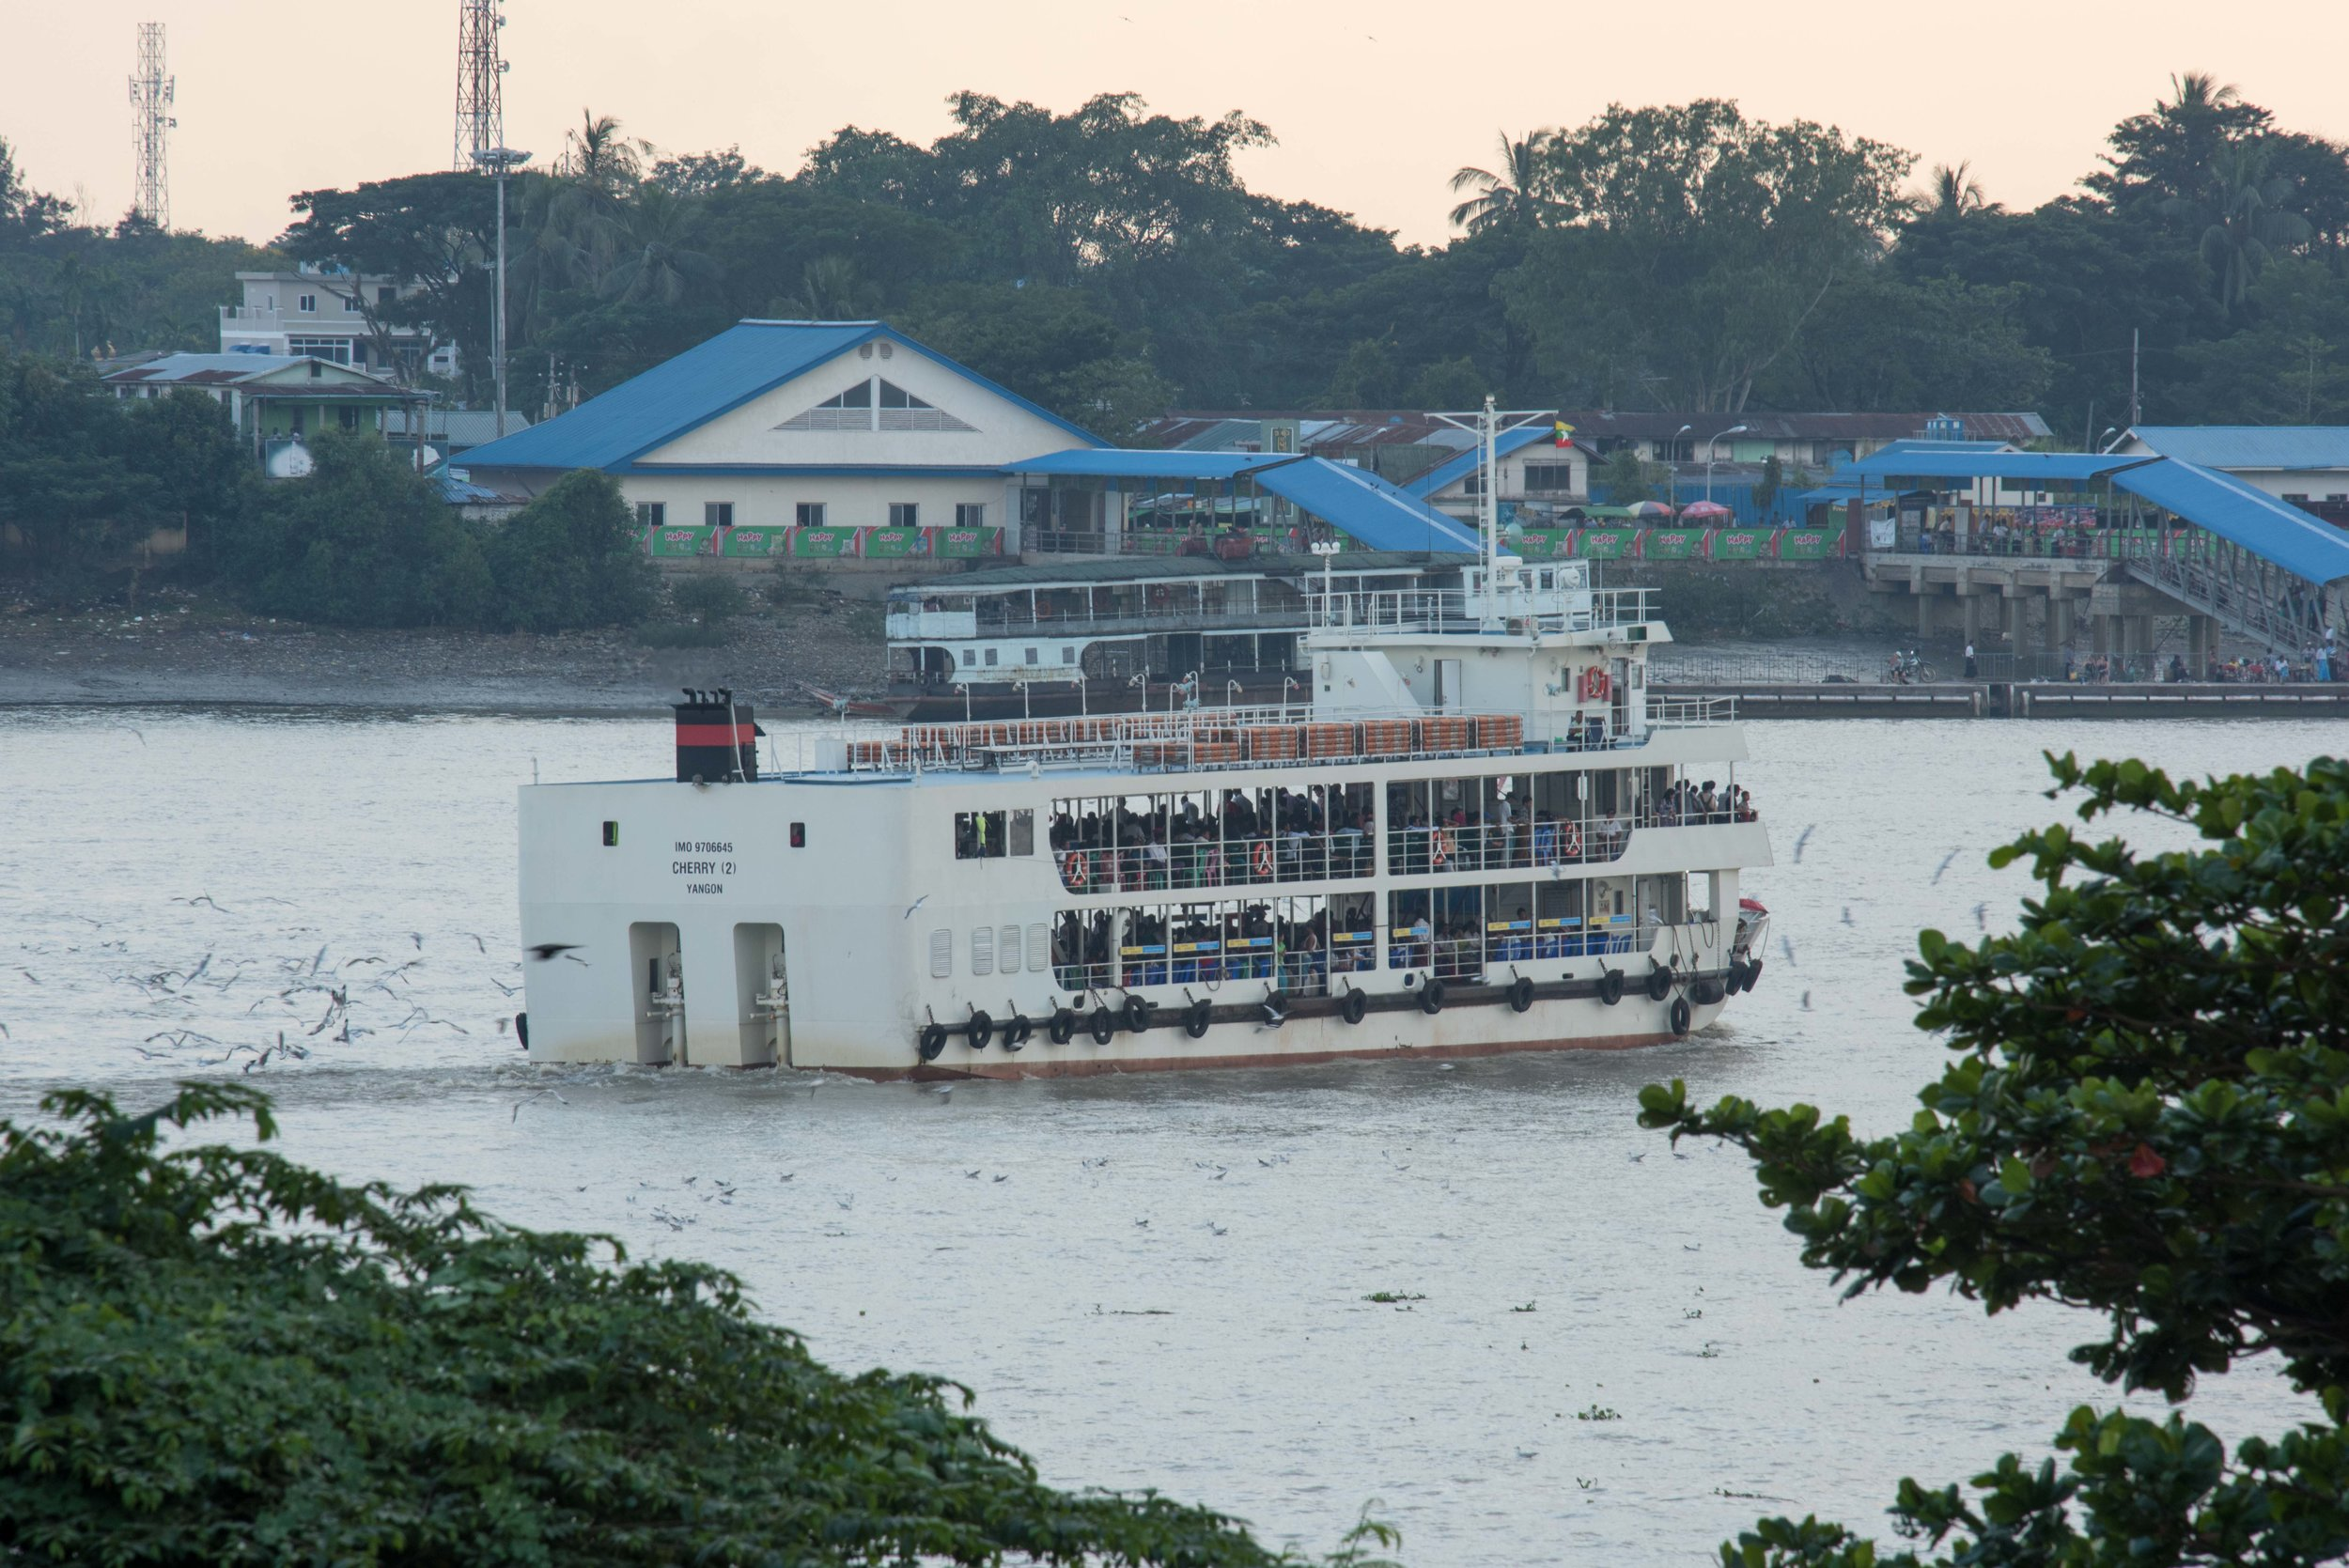 Ferry on river 002, Colonial area, Yangon, Myanmar, 26 Nov 2017.jpg